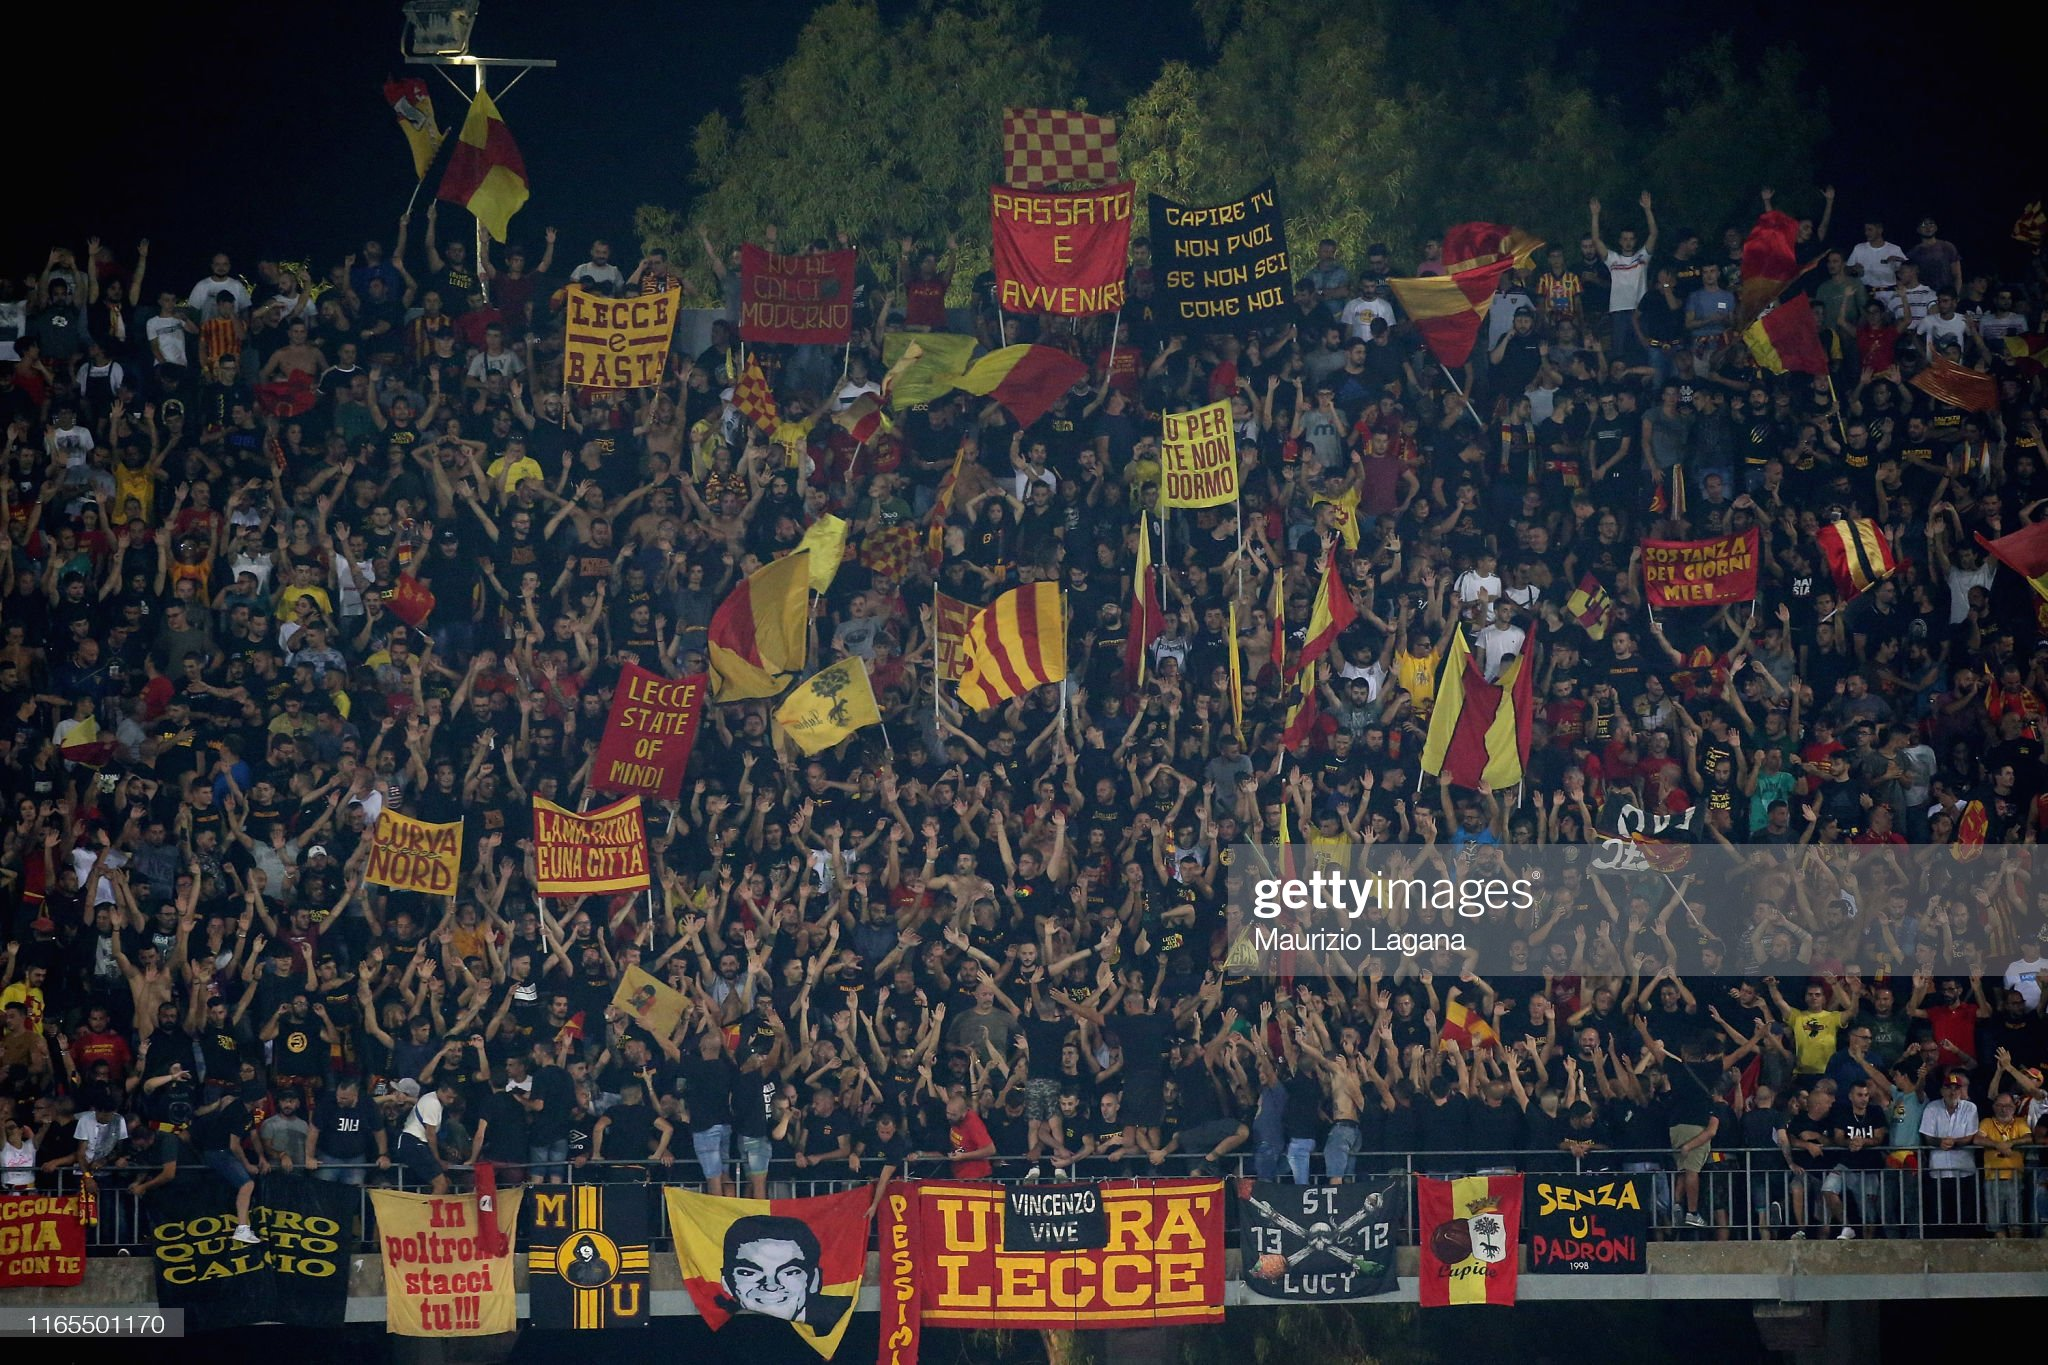 supporters-of-lecce-during-the-serie-a-match-between-us-lecce-and-picture-id1165501170?s=2048x2048